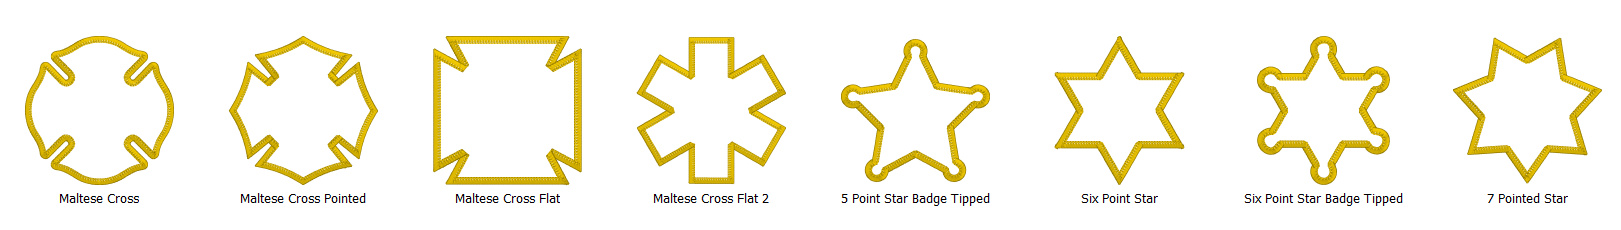 Merrowly Faux Merrow Stitch Patch Edge Embroidery Designs Scalable Examples of Crosses and Stars for Embrilliance Software